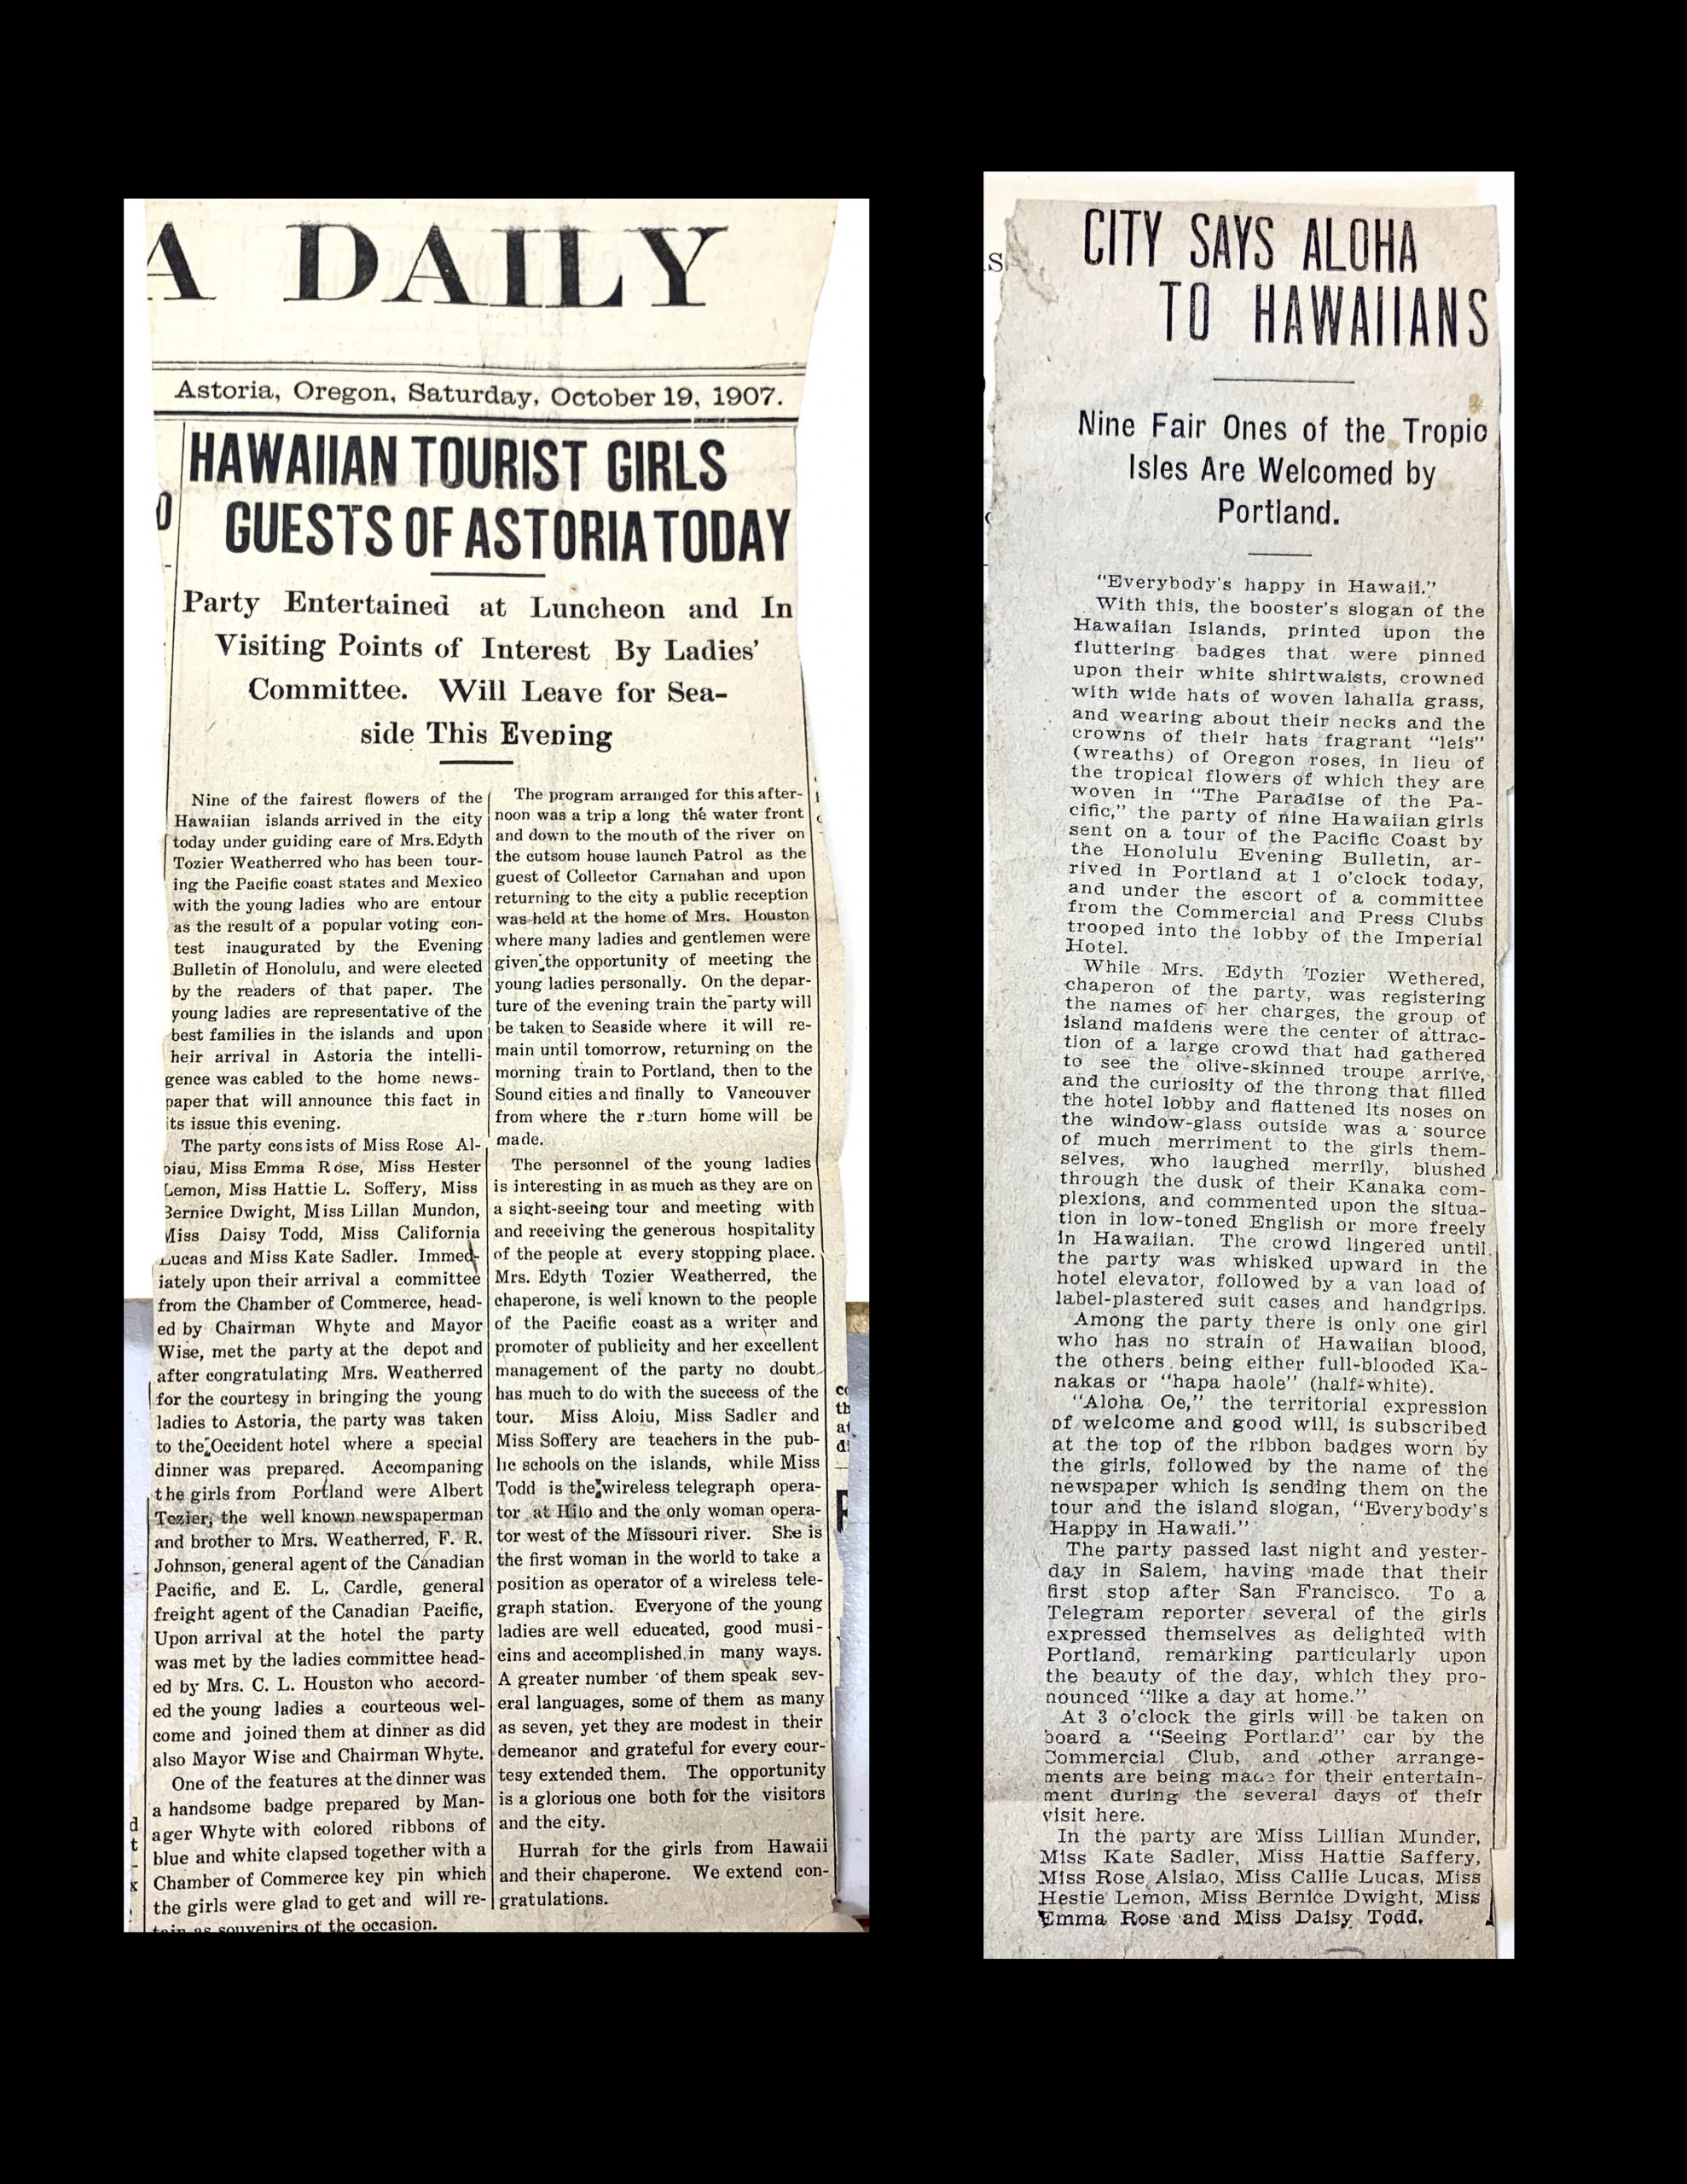 """Two newspaper articles. One is from Astoria, Oregon on Saturday, October 19, 1907. The prominent headline reads: """"HAWAIIAN TOURIST GIRLS GUESTS OF ASTORIA TODAY: Party Entertained at Luncheon and In Visiting Points of Interest By Ladies' Committee. Will Leave for Seaside This Evening. The second is a single article cut from a different newspaper. The article headline reads: """"CITY SAYS ALOHA TO HAWAIIANS: Nine Fair Ones of the Tropic Isles Are Welcomed by Portland."""